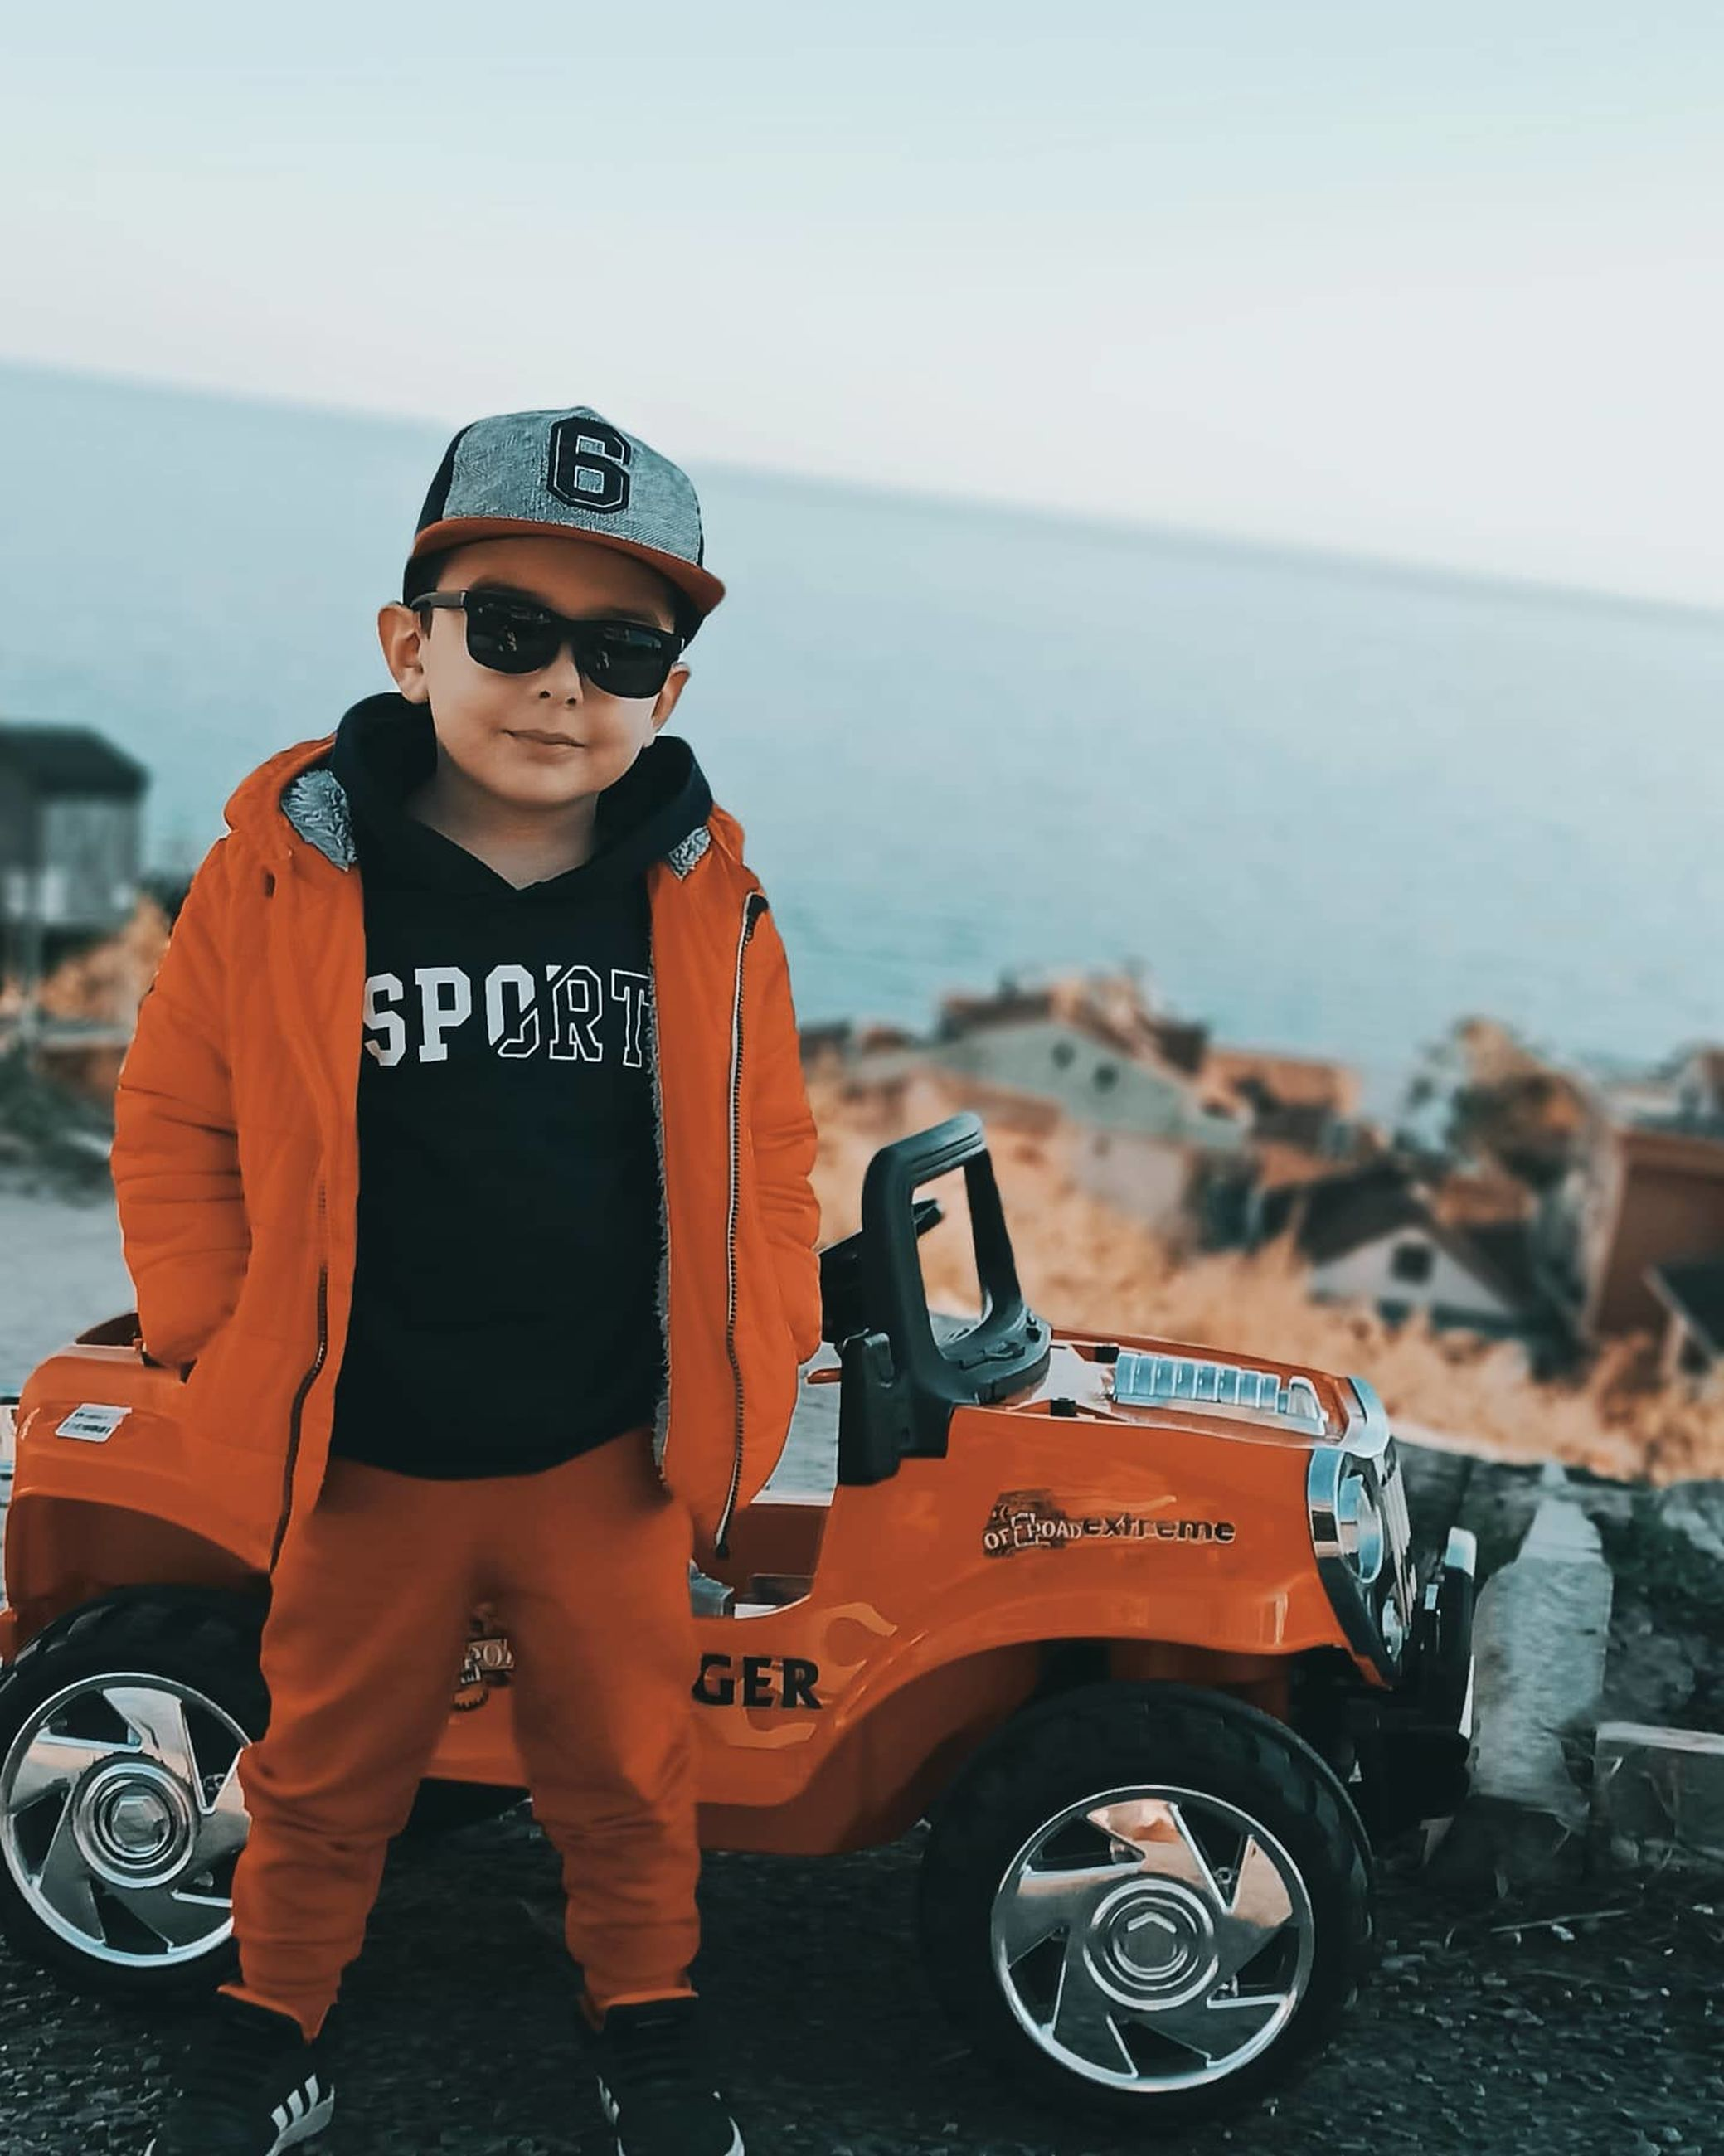 one person, sunglasses, transportation, full length, standing, vehicle, fashion, portrait, glasses, sea, mode of transportation, looking at camera, day, car, adult, sky, men, nature, protection, childhood, outdoors, security, water, child, front view, sports, clothing, leisure activity, land, casual clothing, beach, occupation